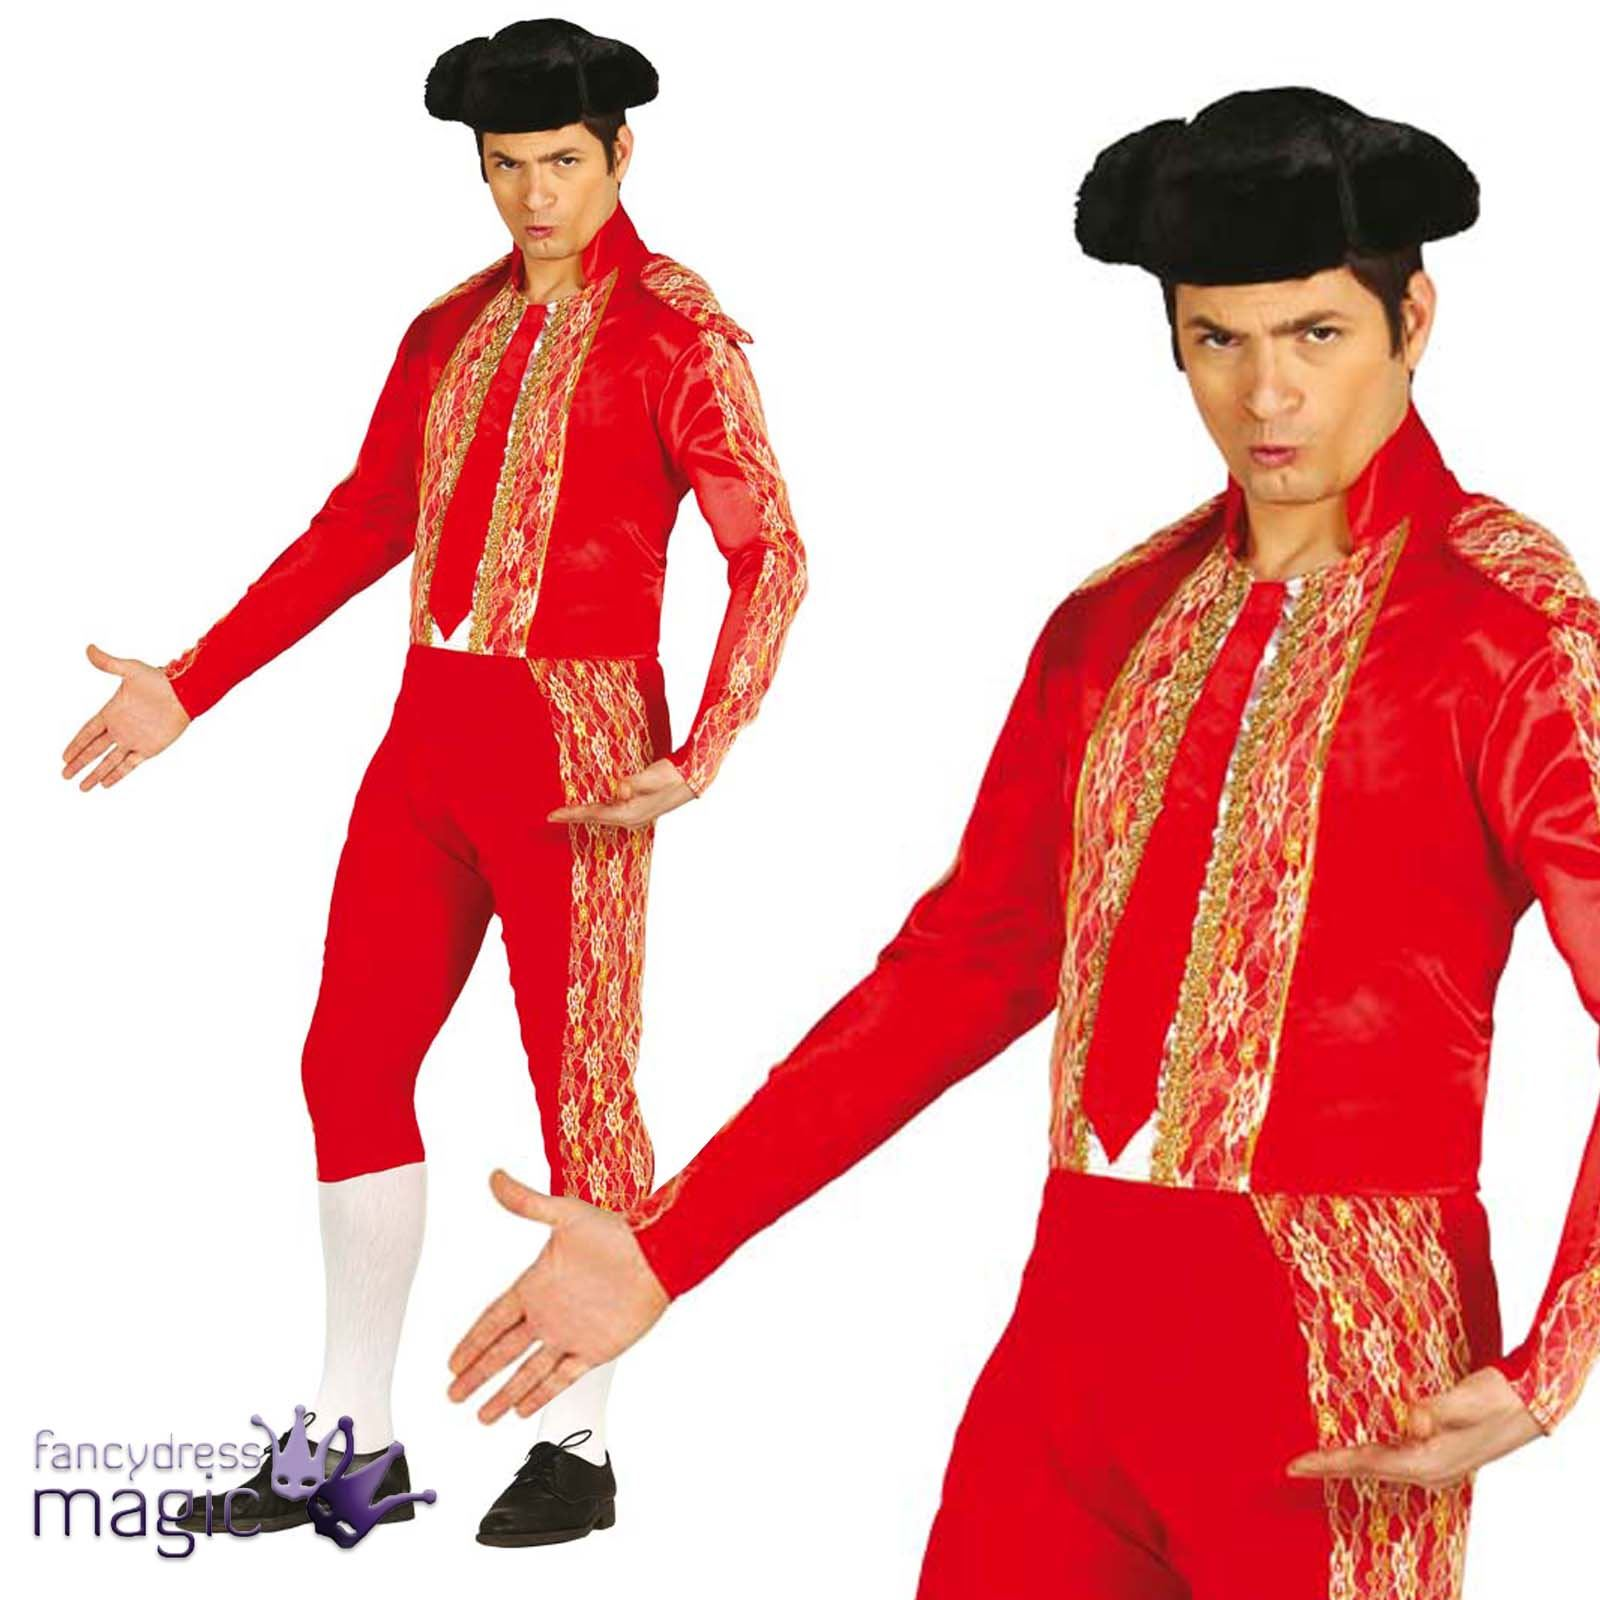 Adult Red Bullfighter Toreador Matador Spain Spanish Fancy Dress Costume Outfit Ebay